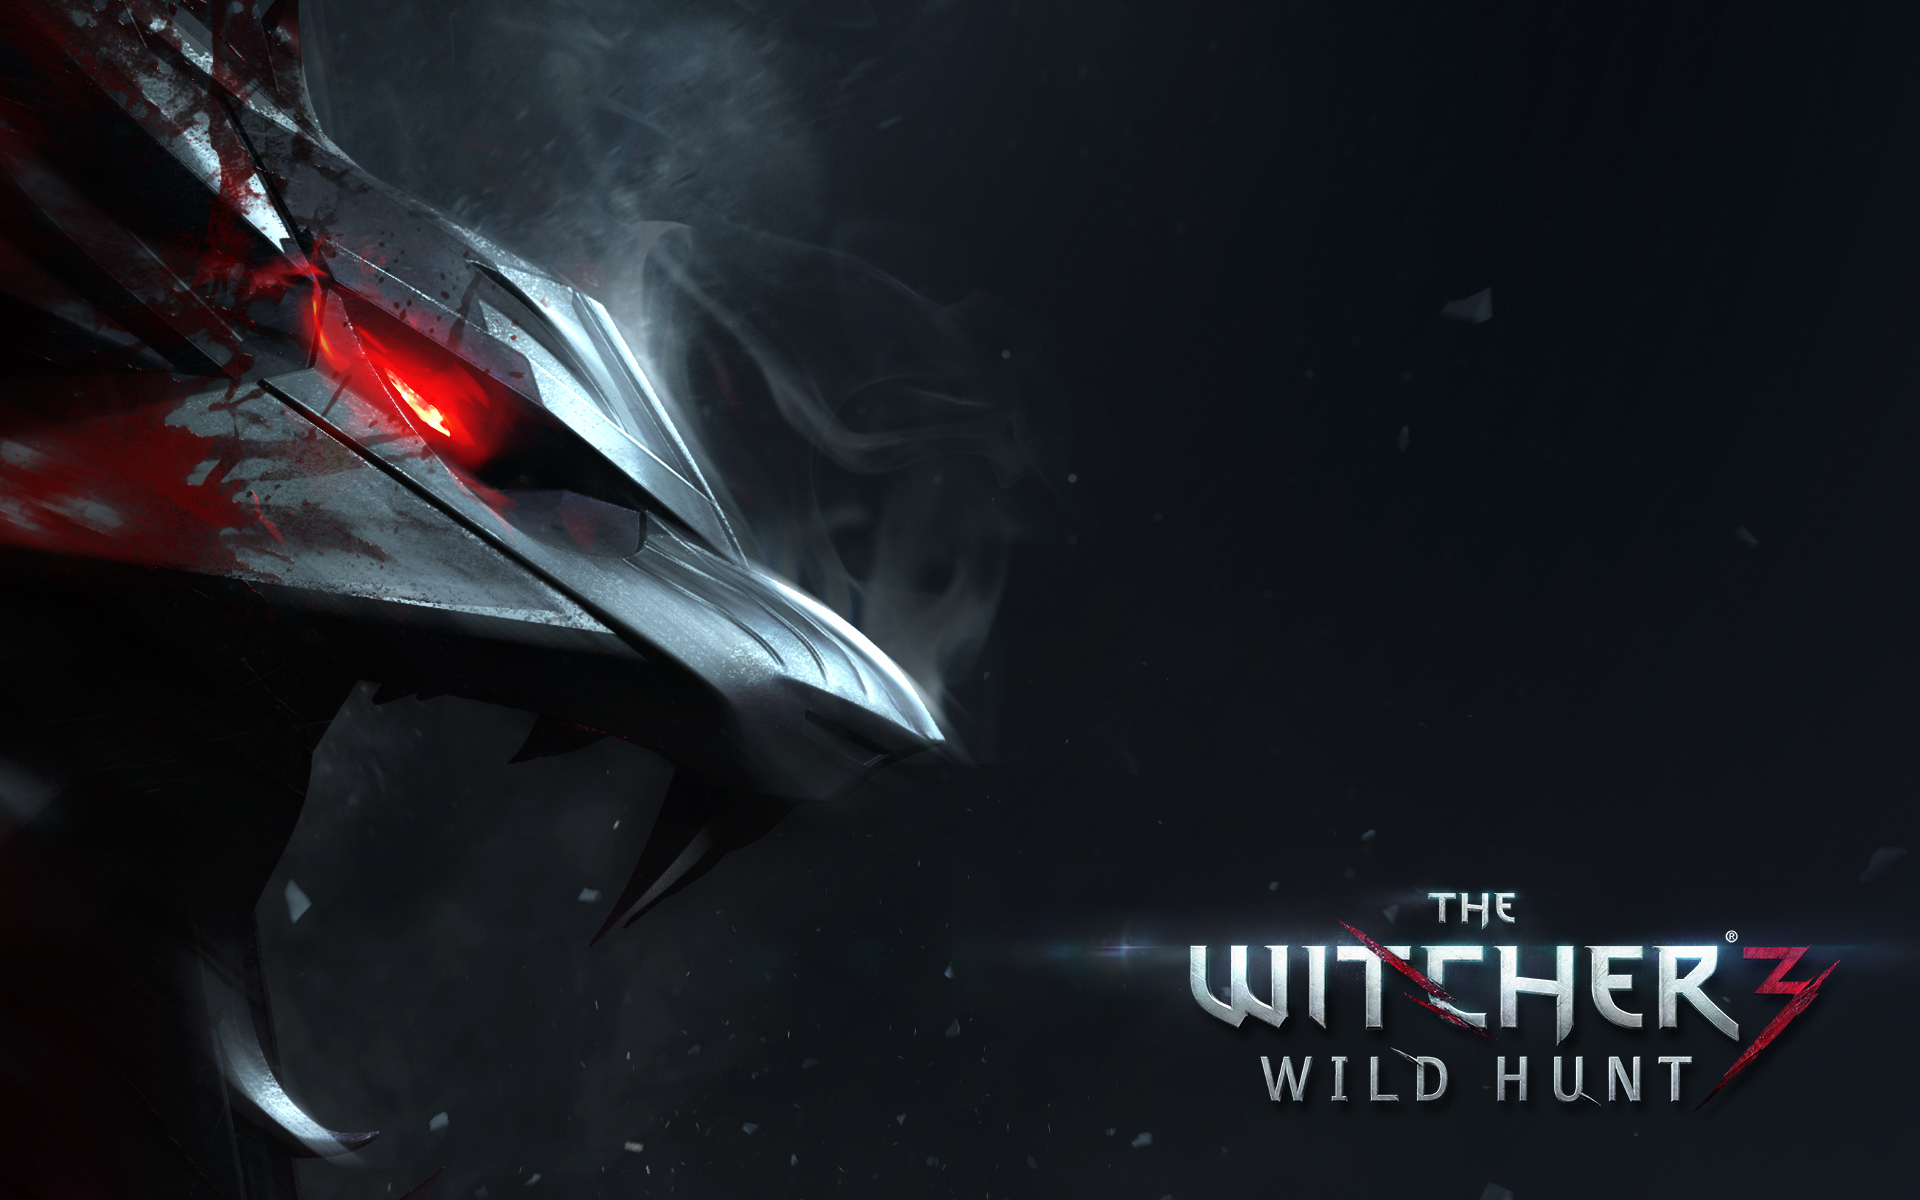 The Witcher 3 Wild Hunt Wallpapers HD Wallpapers 1920x1200